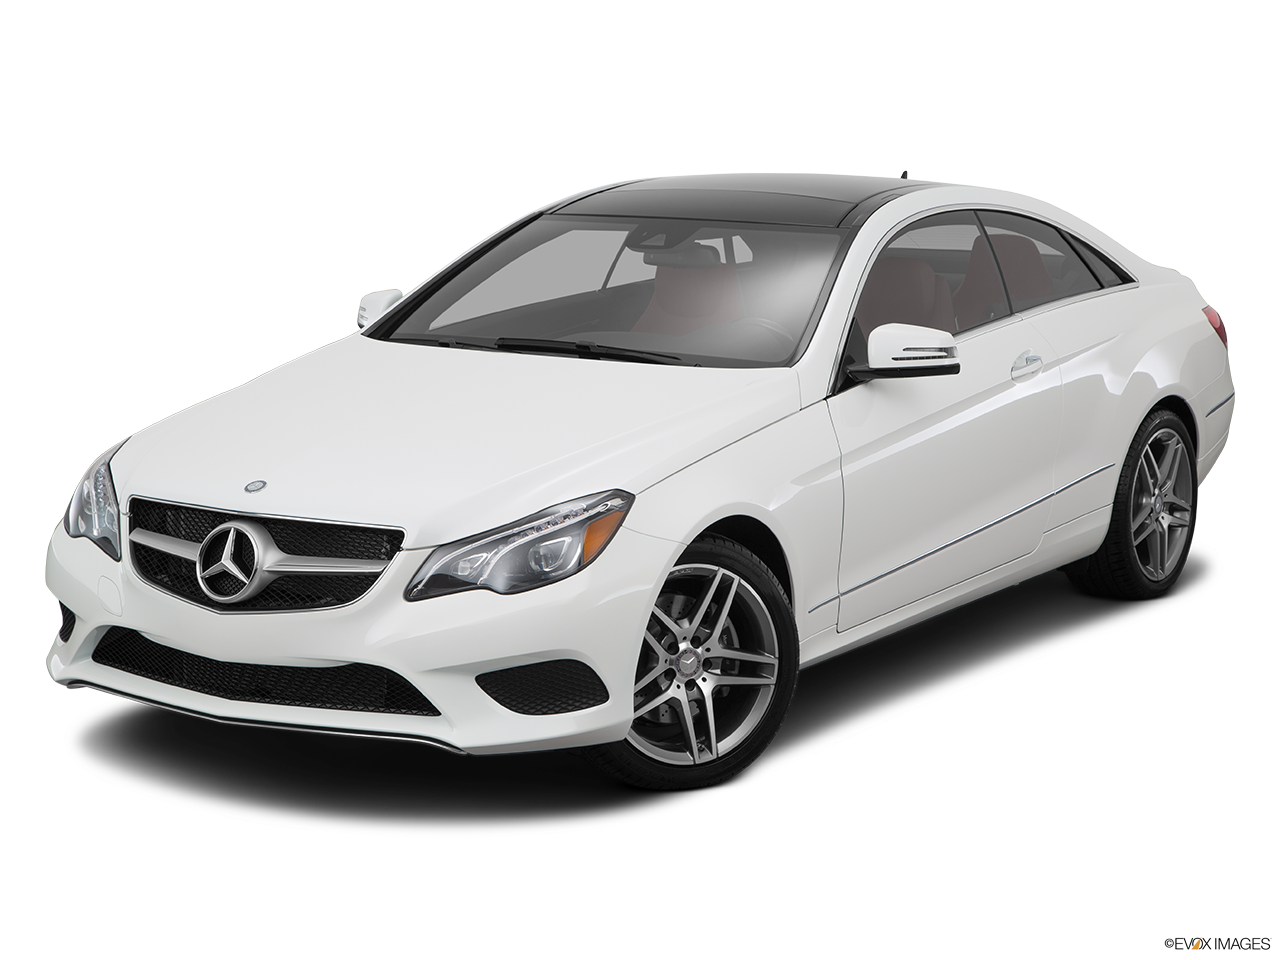 "Used E-Class Specials"" width="